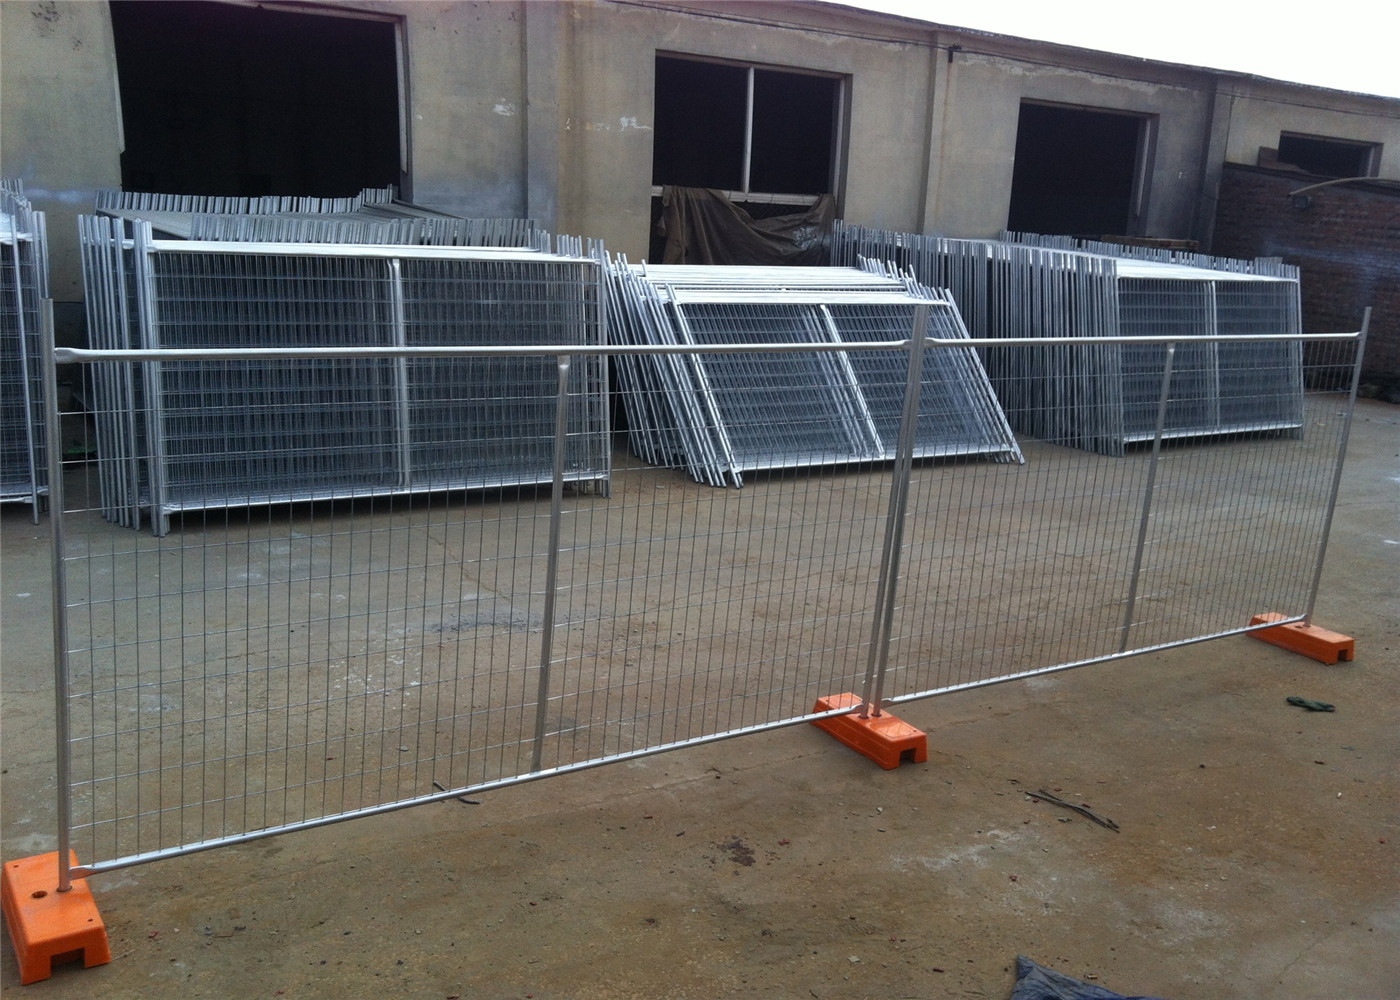 HDG NZ Auckland Temporary Construction Site Fencing Panels OD 33mm outer  diameter wall thick 2 00mm 2100mmx3300mm